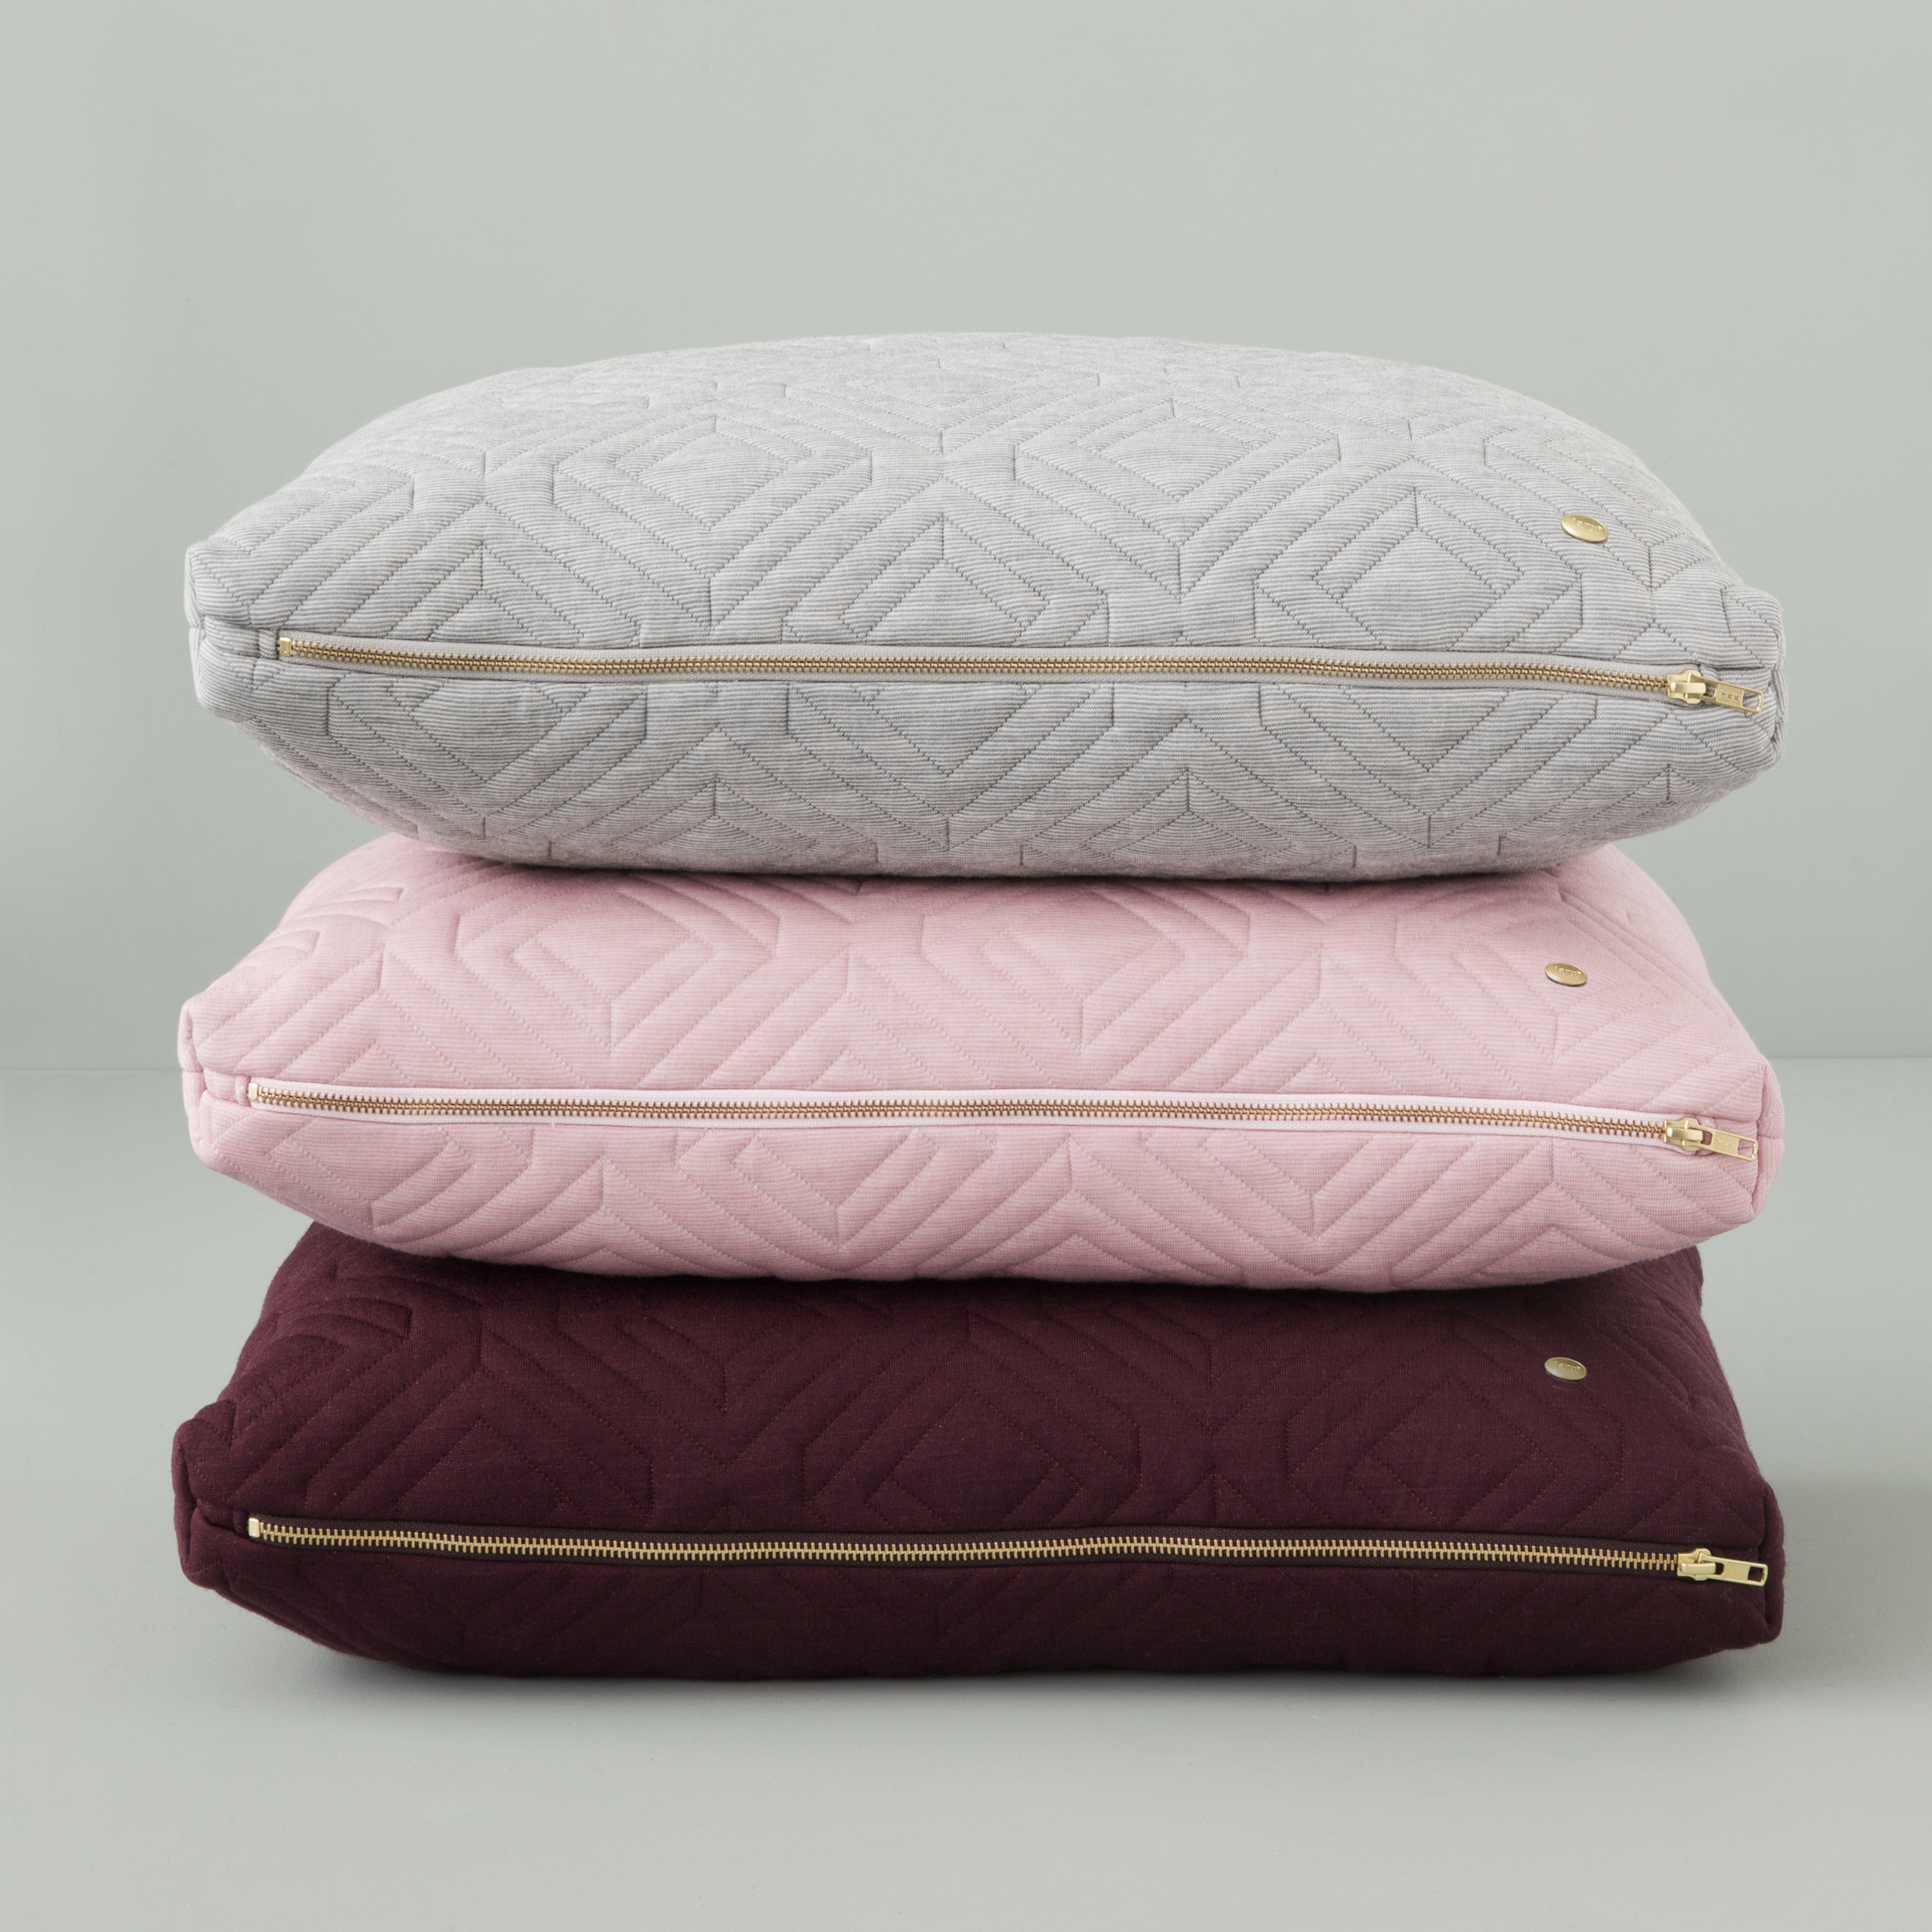 Quilted Cushion - Light Grey, Rose and Bordeaux £79 each